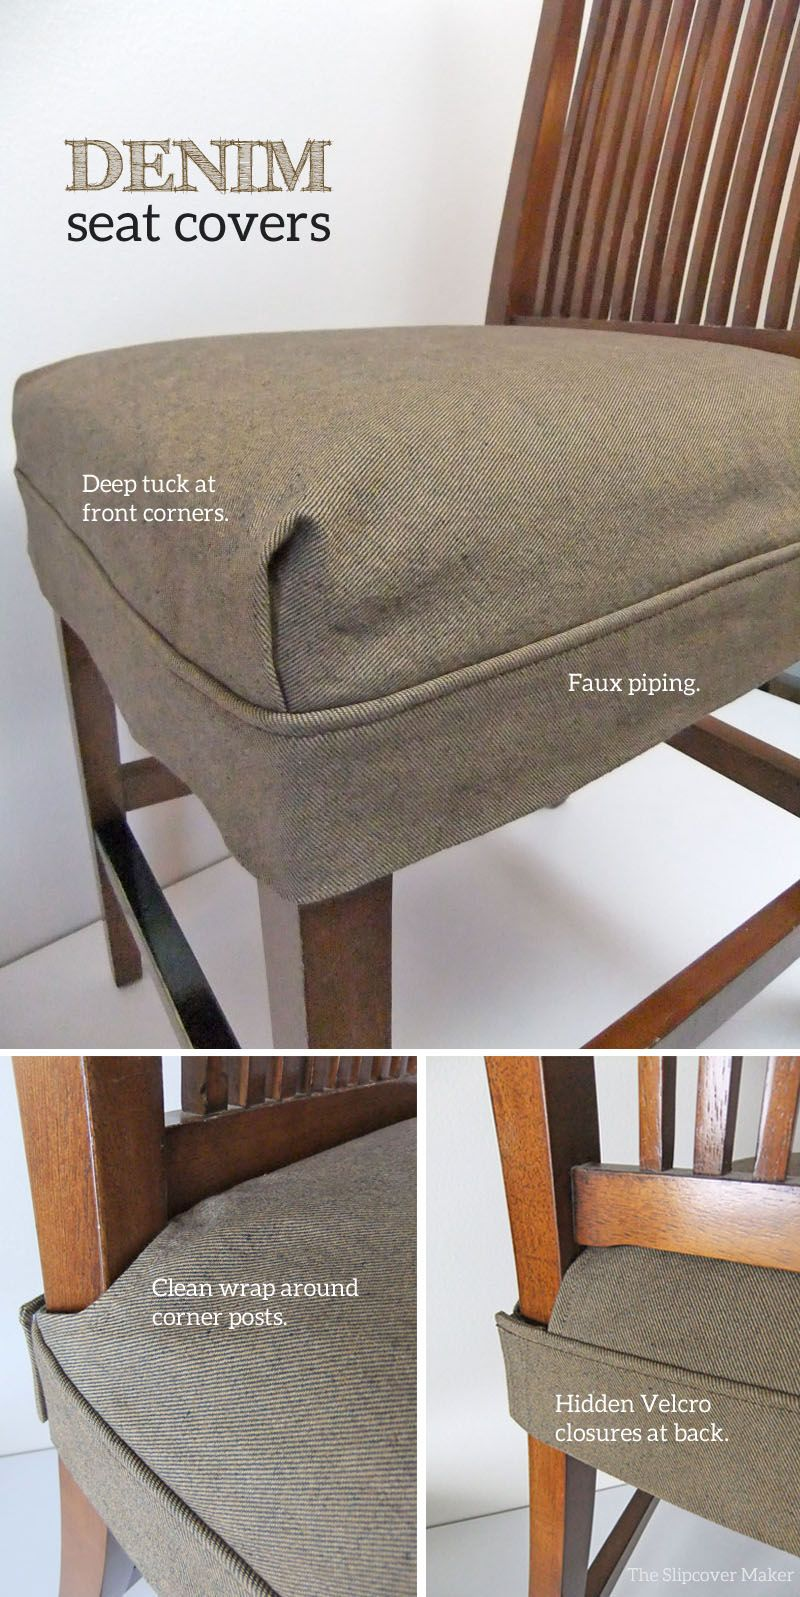 Washable Seat Covers For Dining Room Chairs Are A Smart